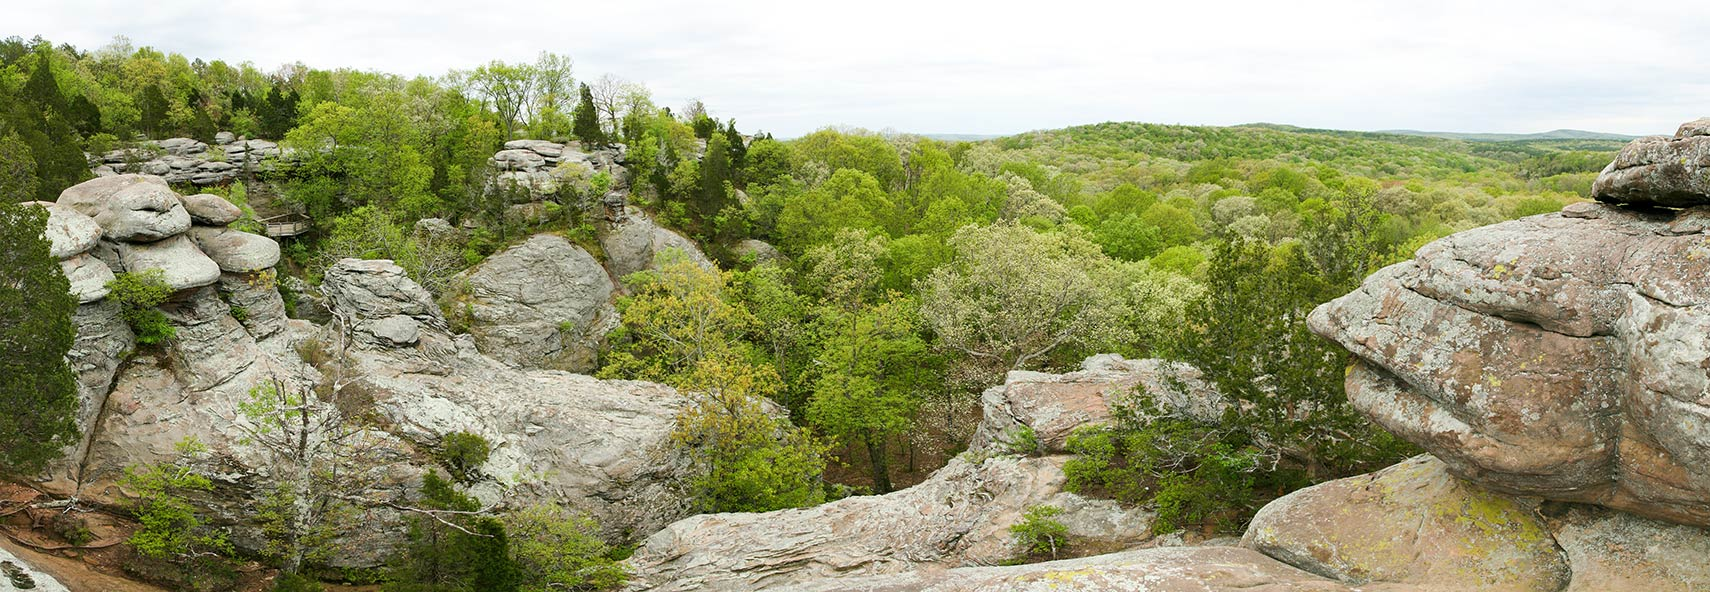 Garden Of The Gods Wilderness, Southern Illinois